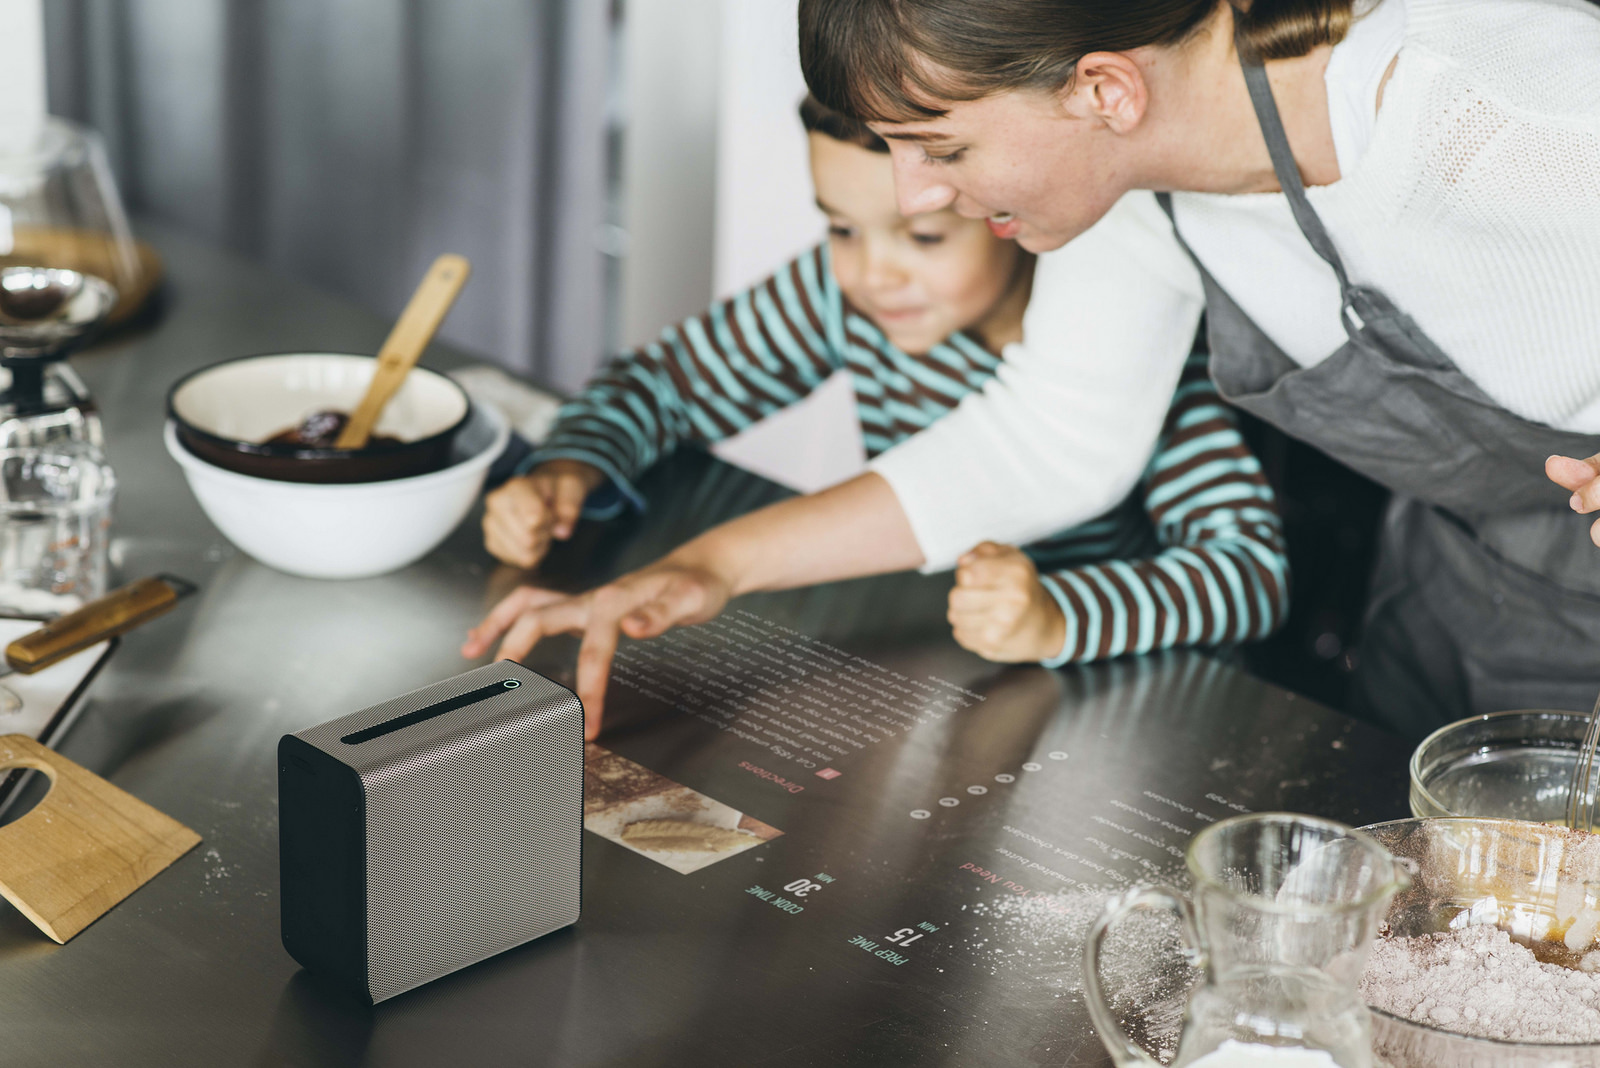 MWC 2017: Sony unveils 'Xperia Touch' interactive Android projector and an open-ear concept headphones